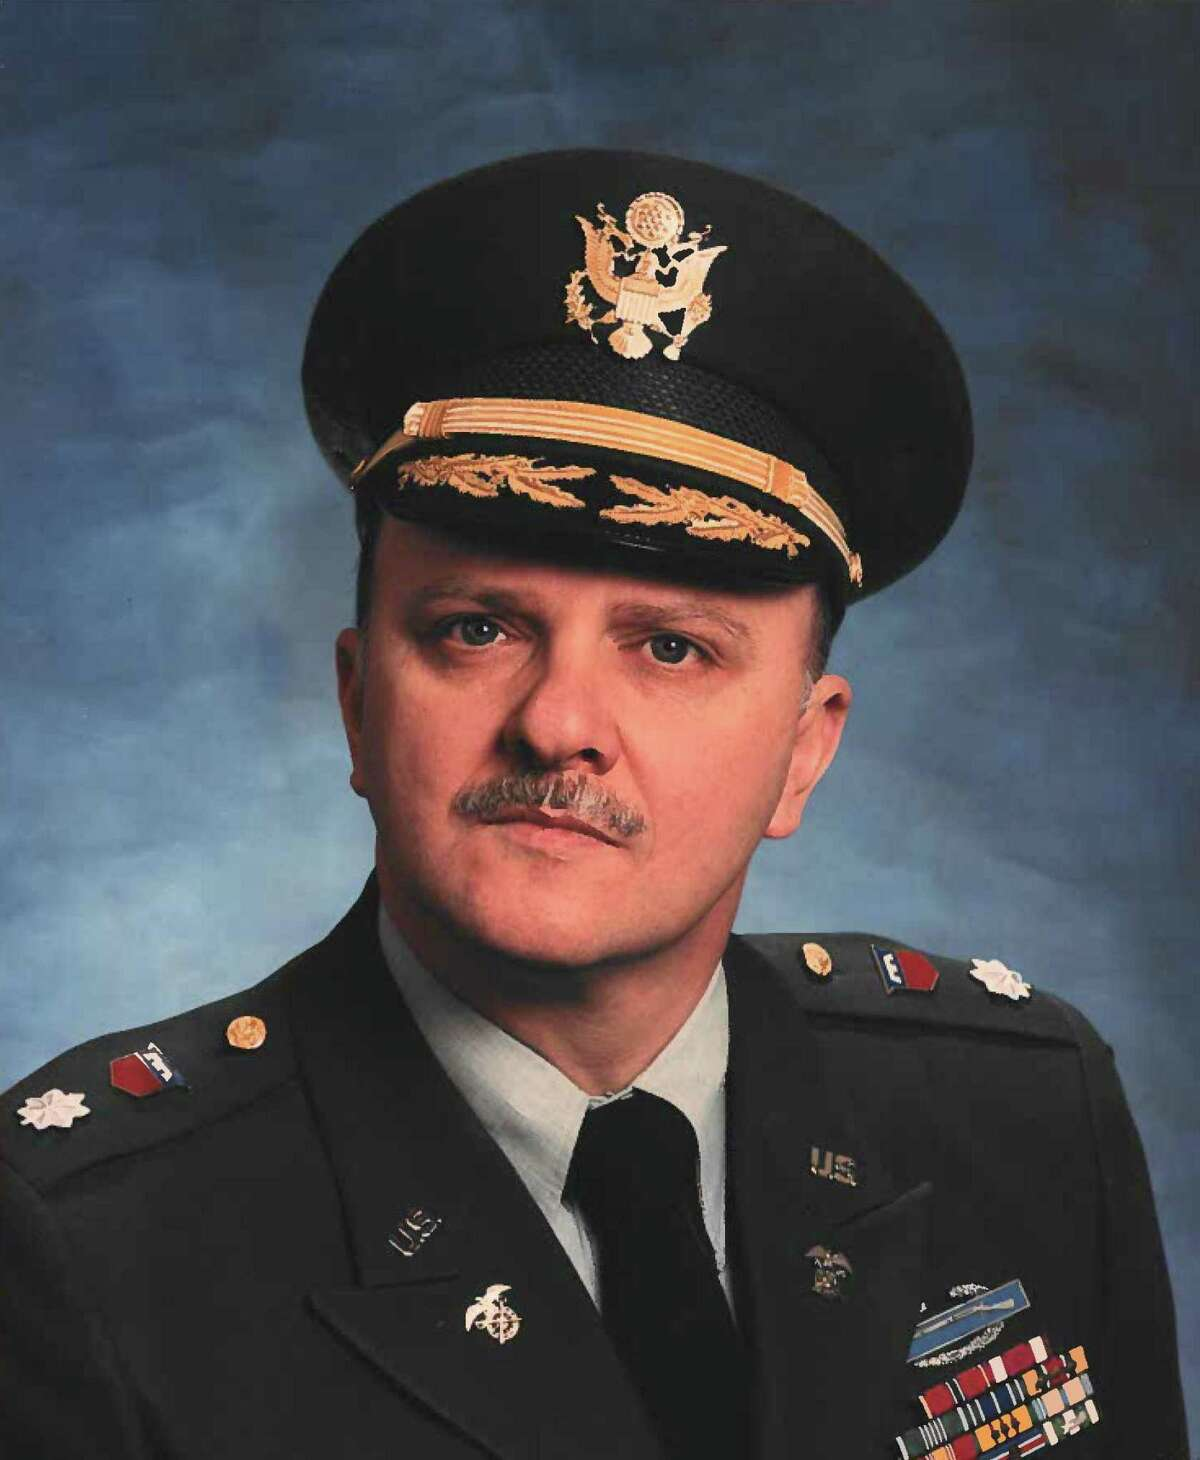 U.S. Army Lt. Col. Robert Mraz (ret) has been named Grand Marshal of Trumbull's 2021 Memorial Day parade.